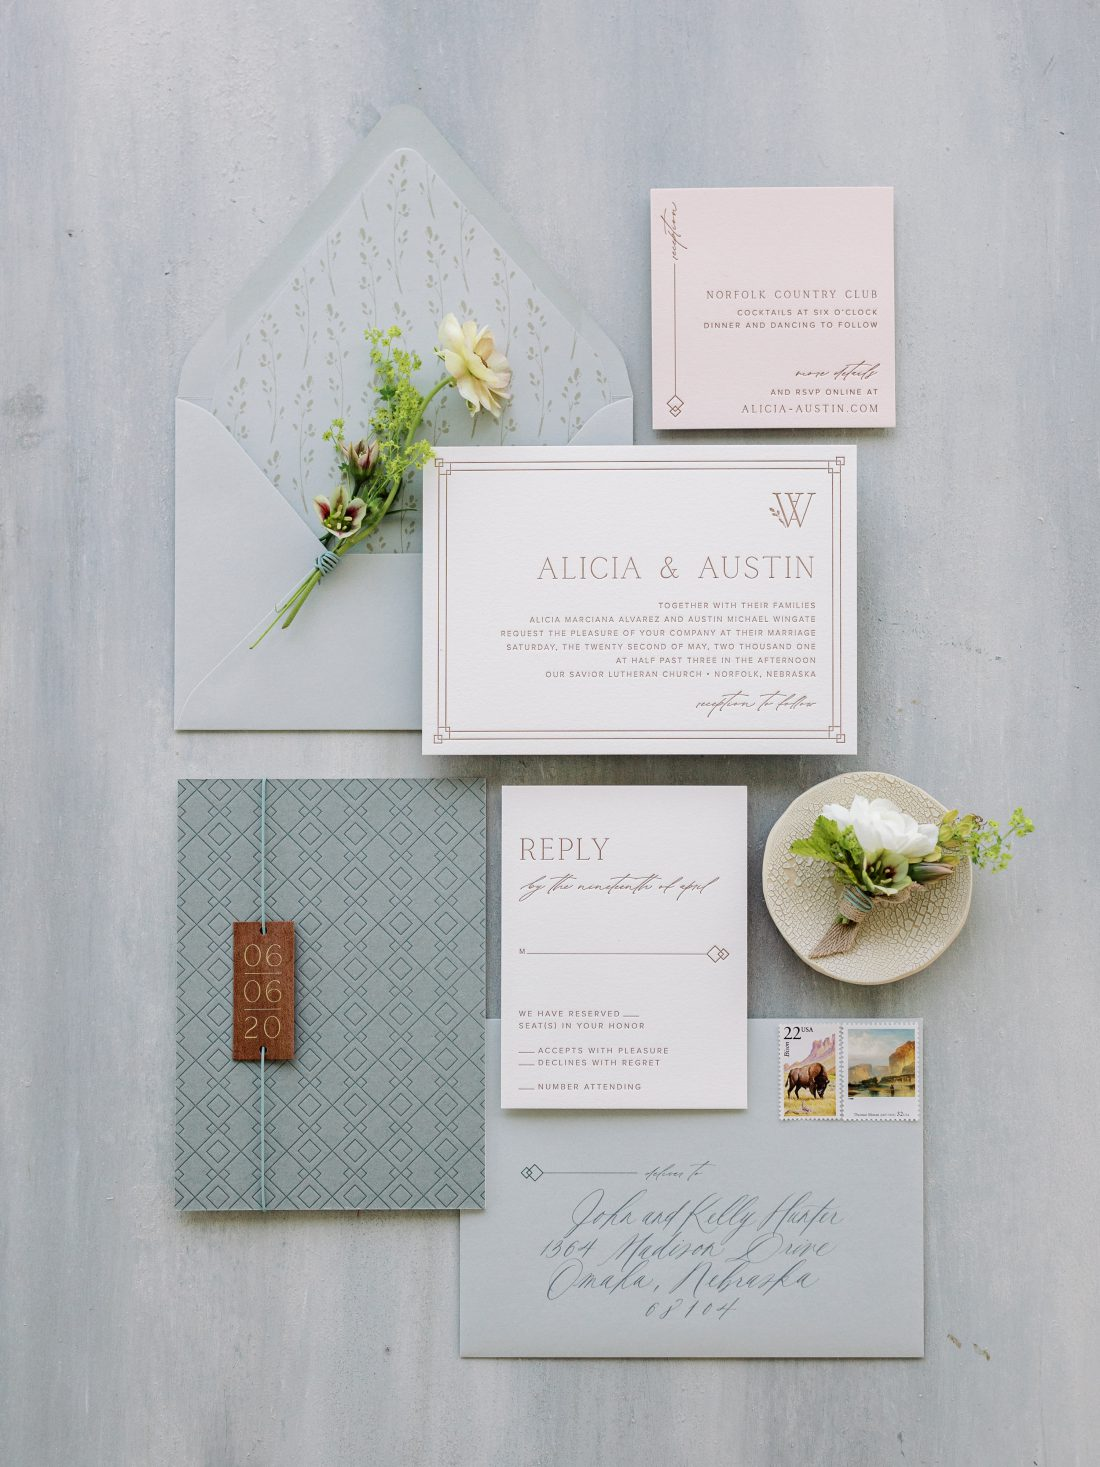 The letterpress invitations were pressed into a suede-textured paper. The warmth of the rust-colored ink provided a nice contrast to the blue duplexed paper and envelopes.